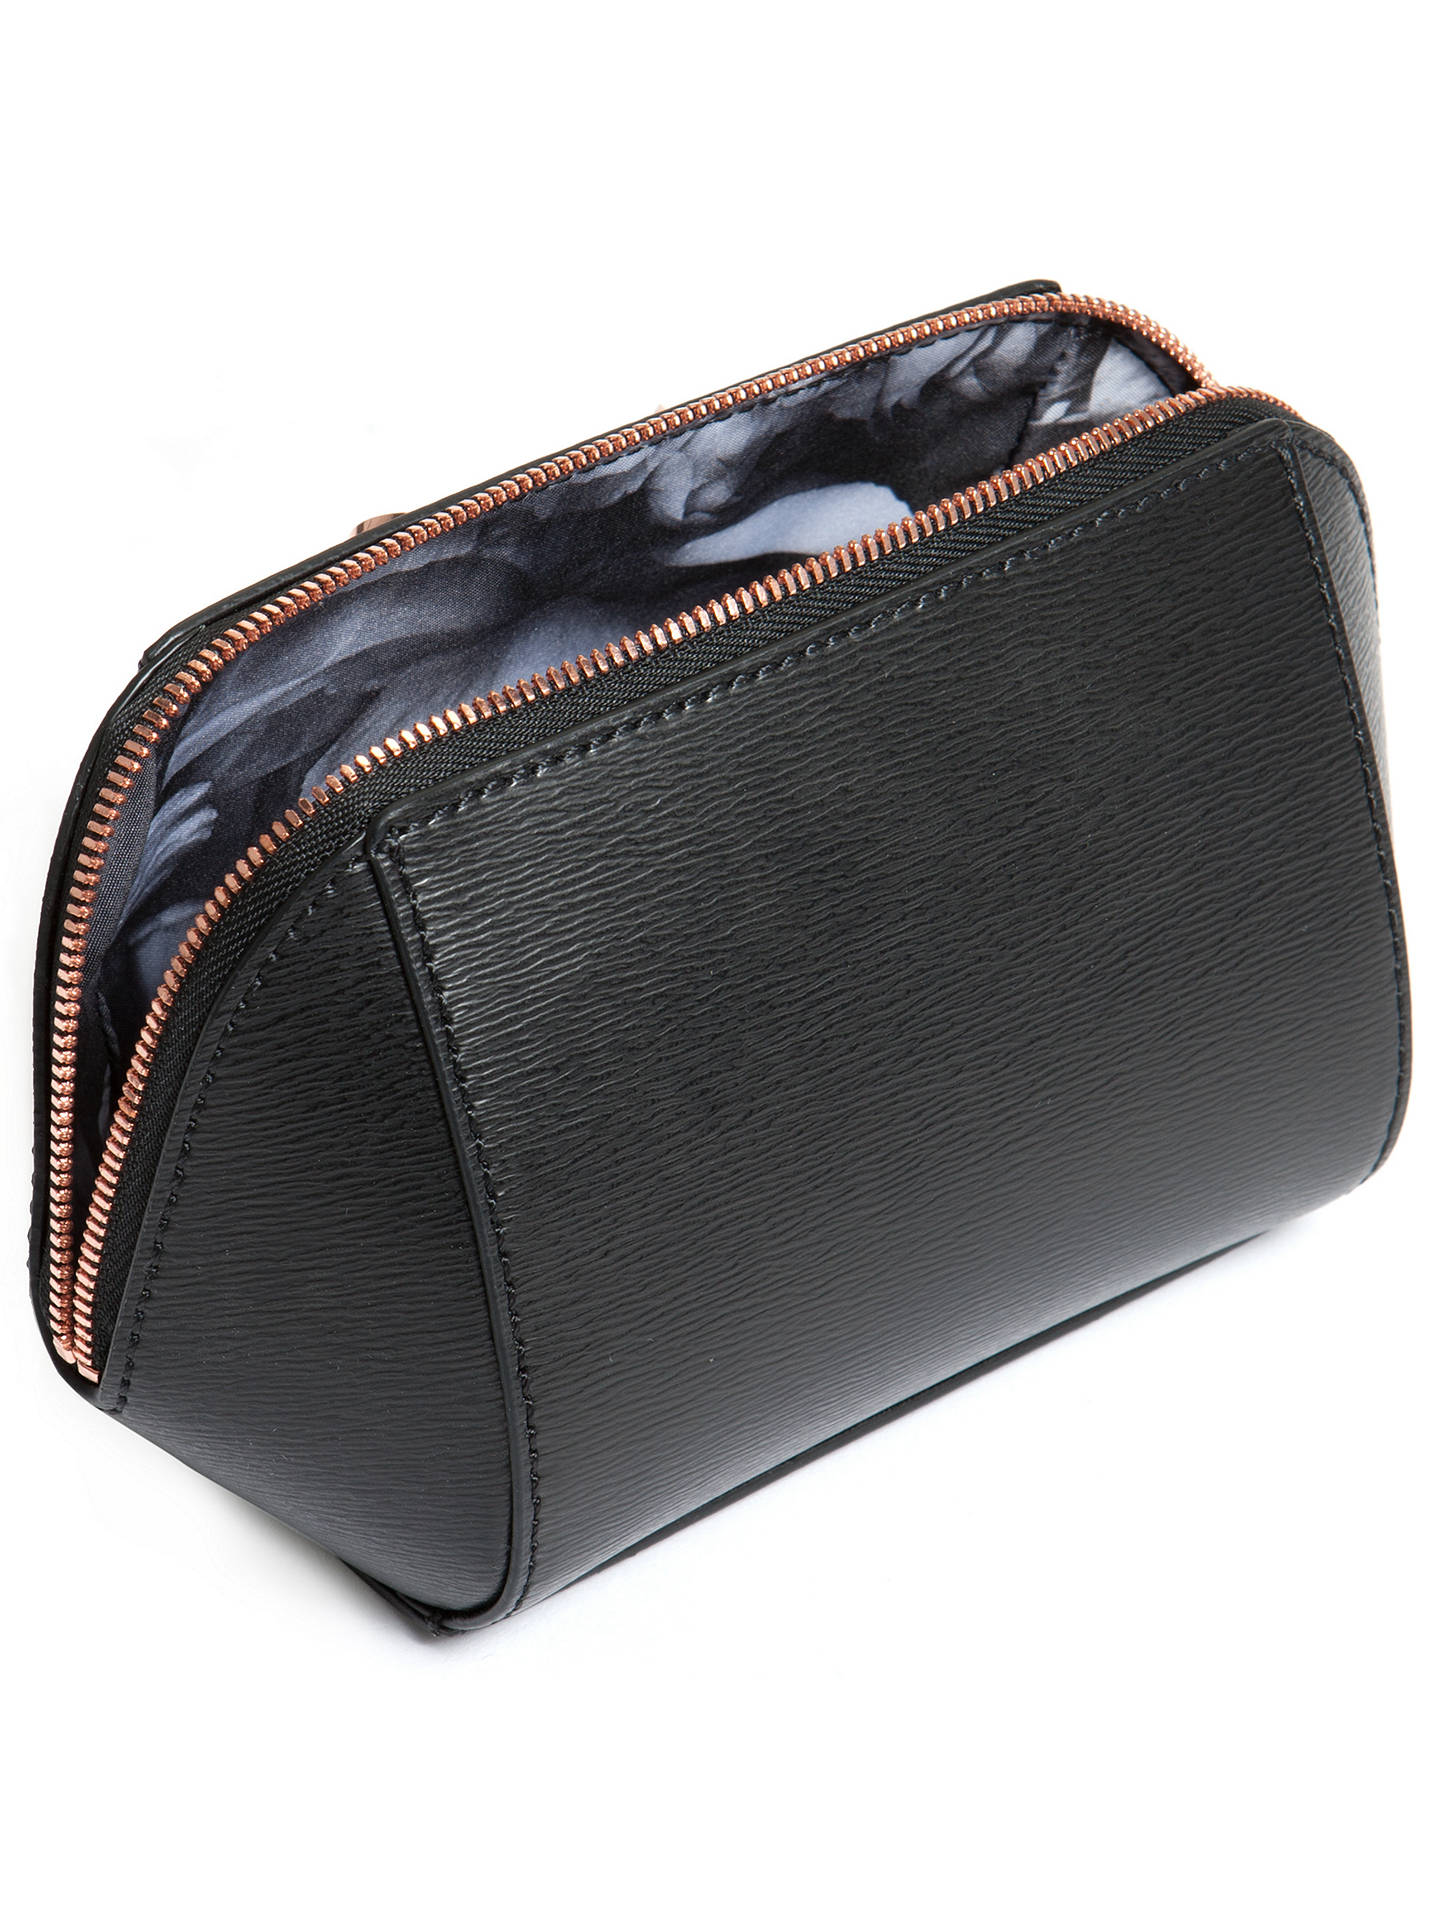 Ted Baker Ammi Bow Leather Makeup Bag